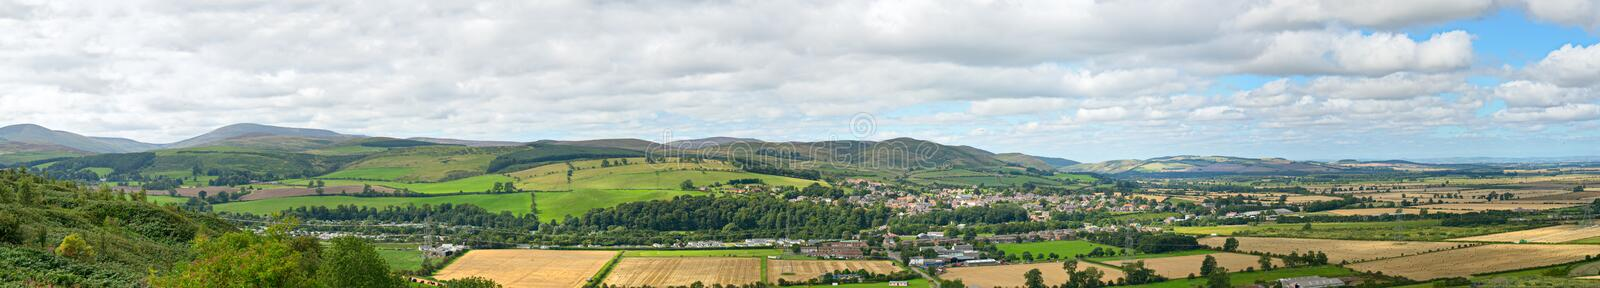 Wooler, le Northumberland, Angleterre, panorama image libre de droits